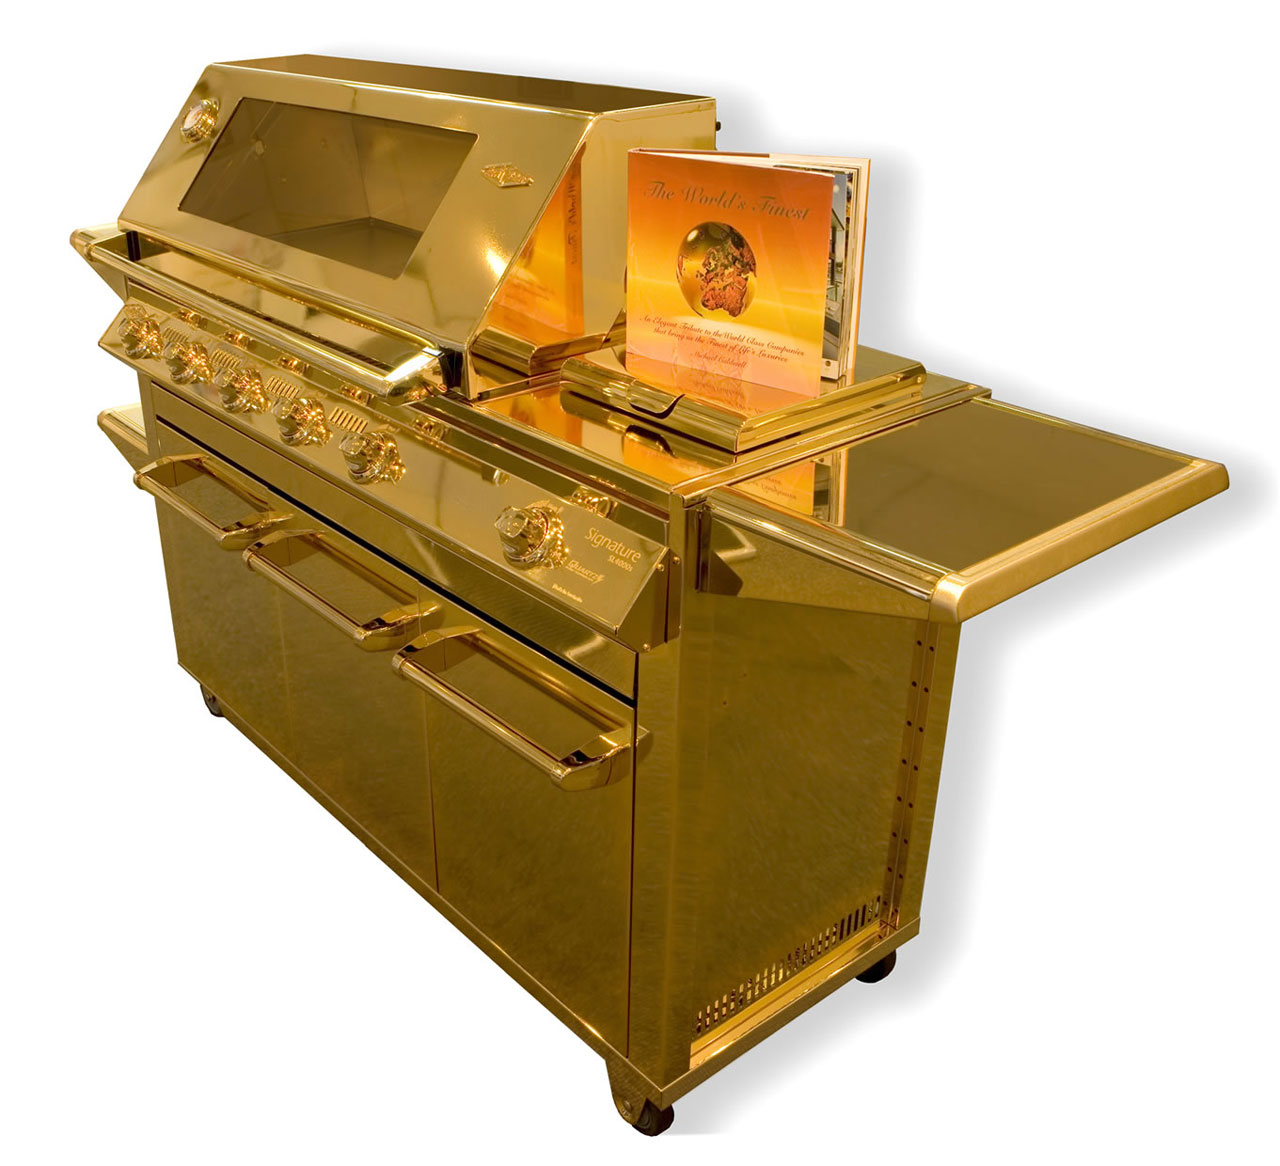 Beefeater 24-Carat Gold Plated Barbecue